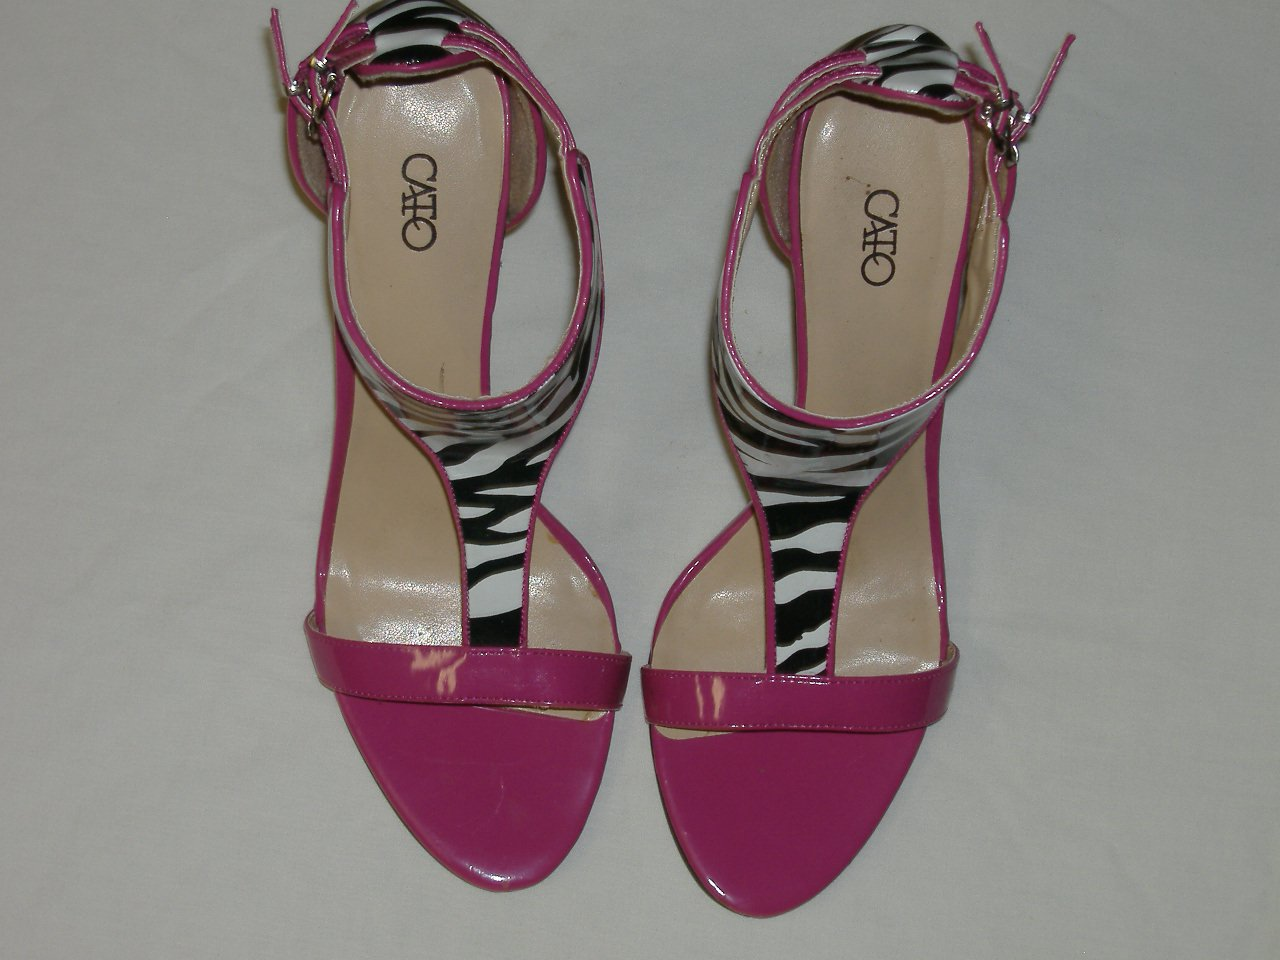 Pair Of Lady Shoes From Cato's      Size 9